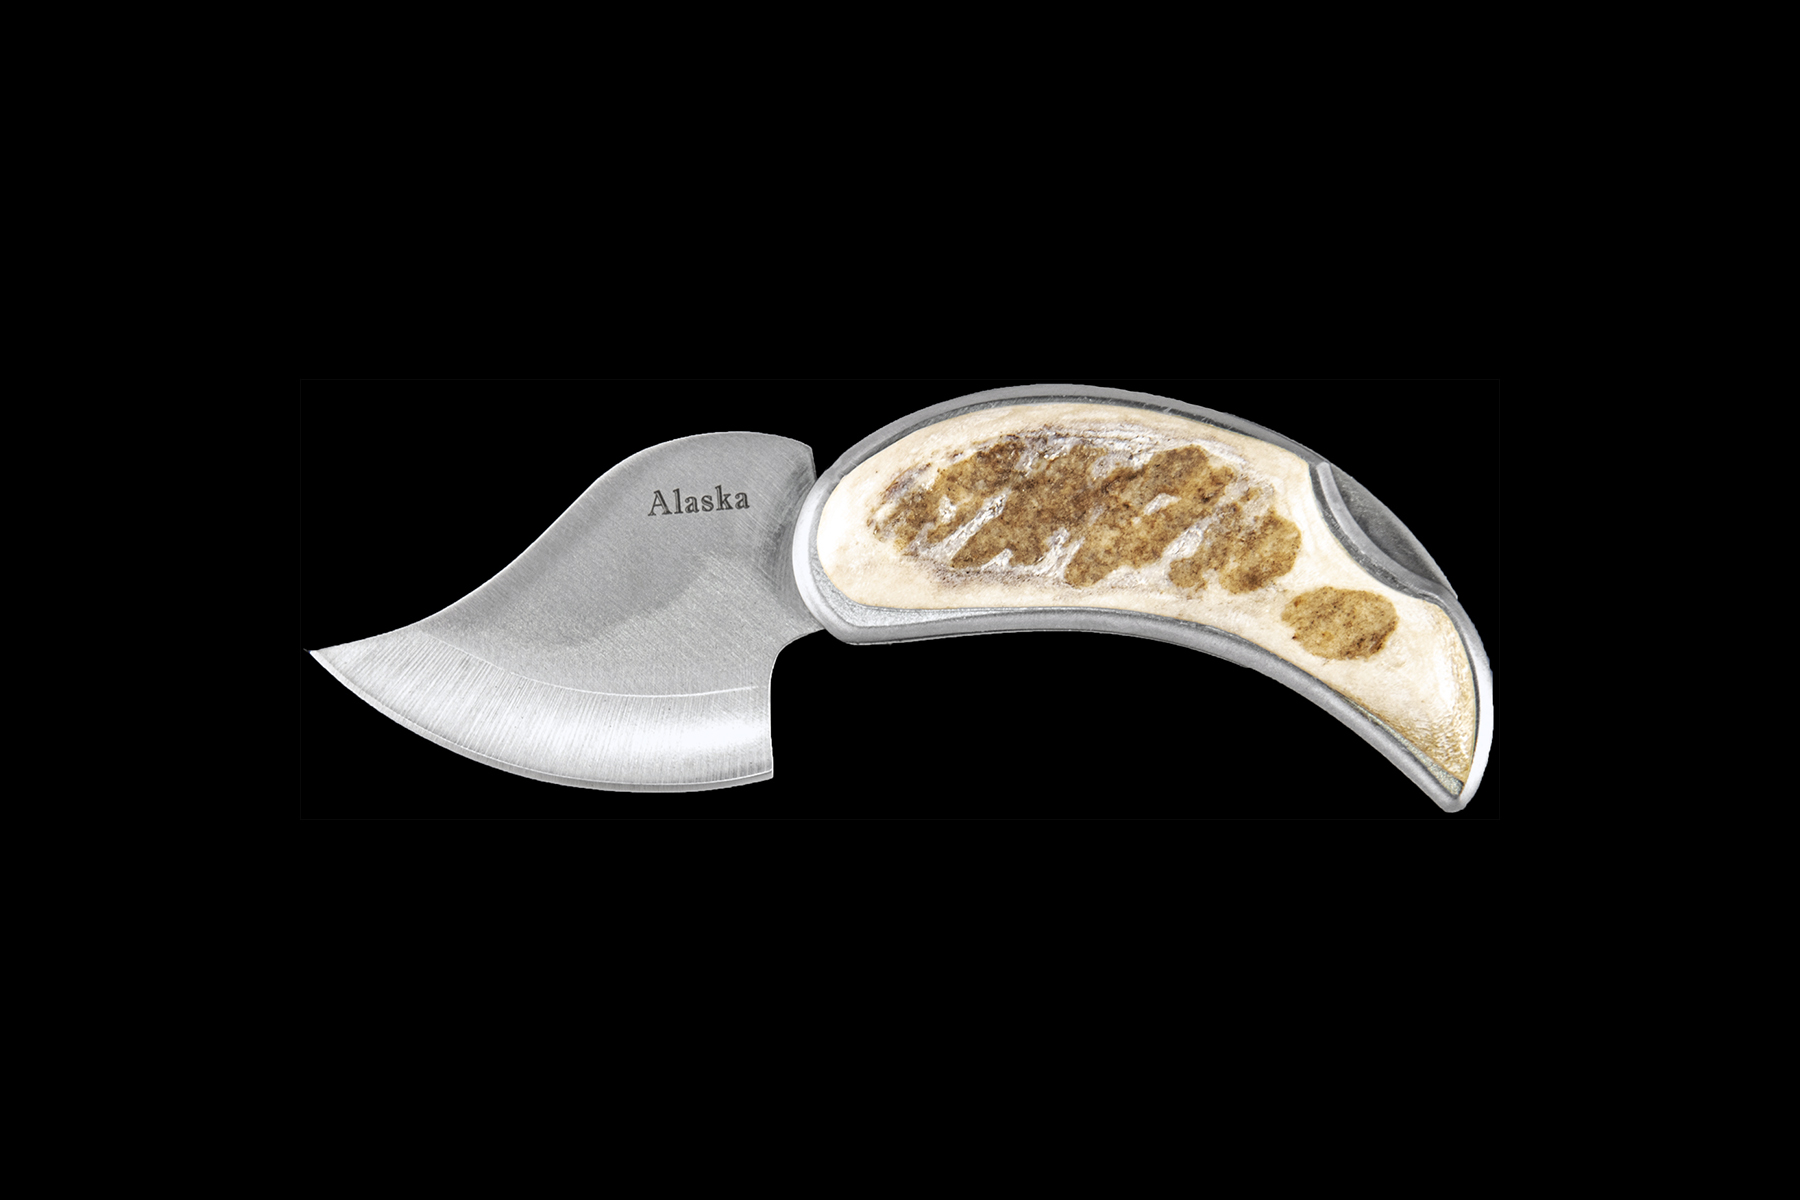 pocket-ulu-alaskan-moose-antler-open.jpg